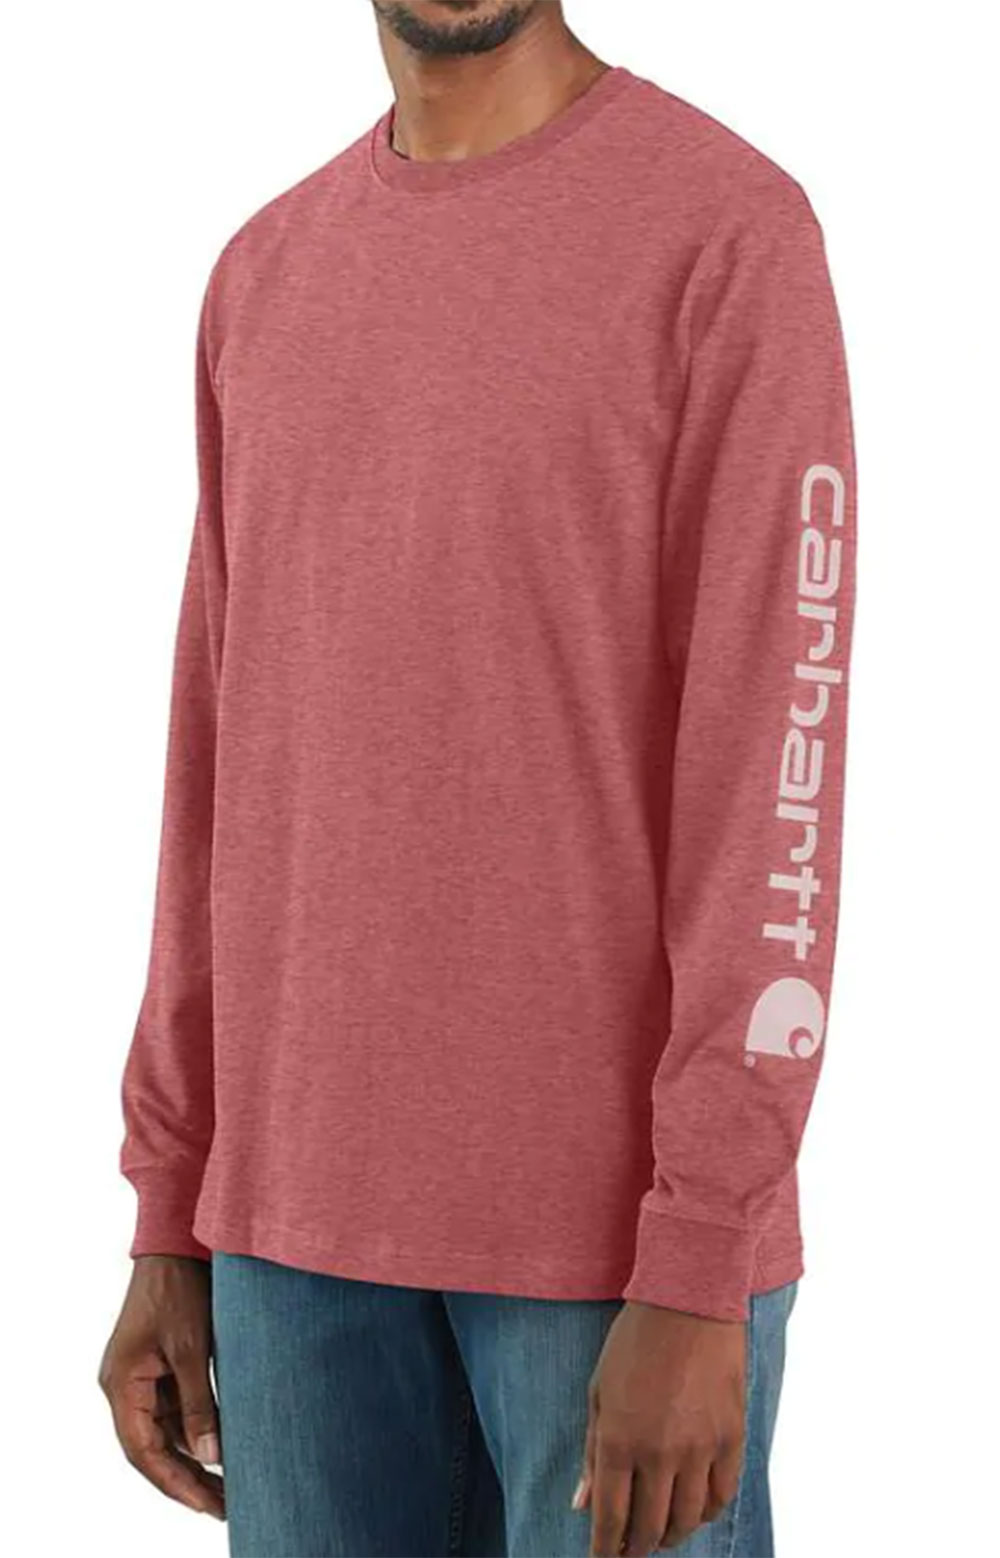 (K231) Signature Sleeve Logo L/S Shirt - Blush Pink Heather